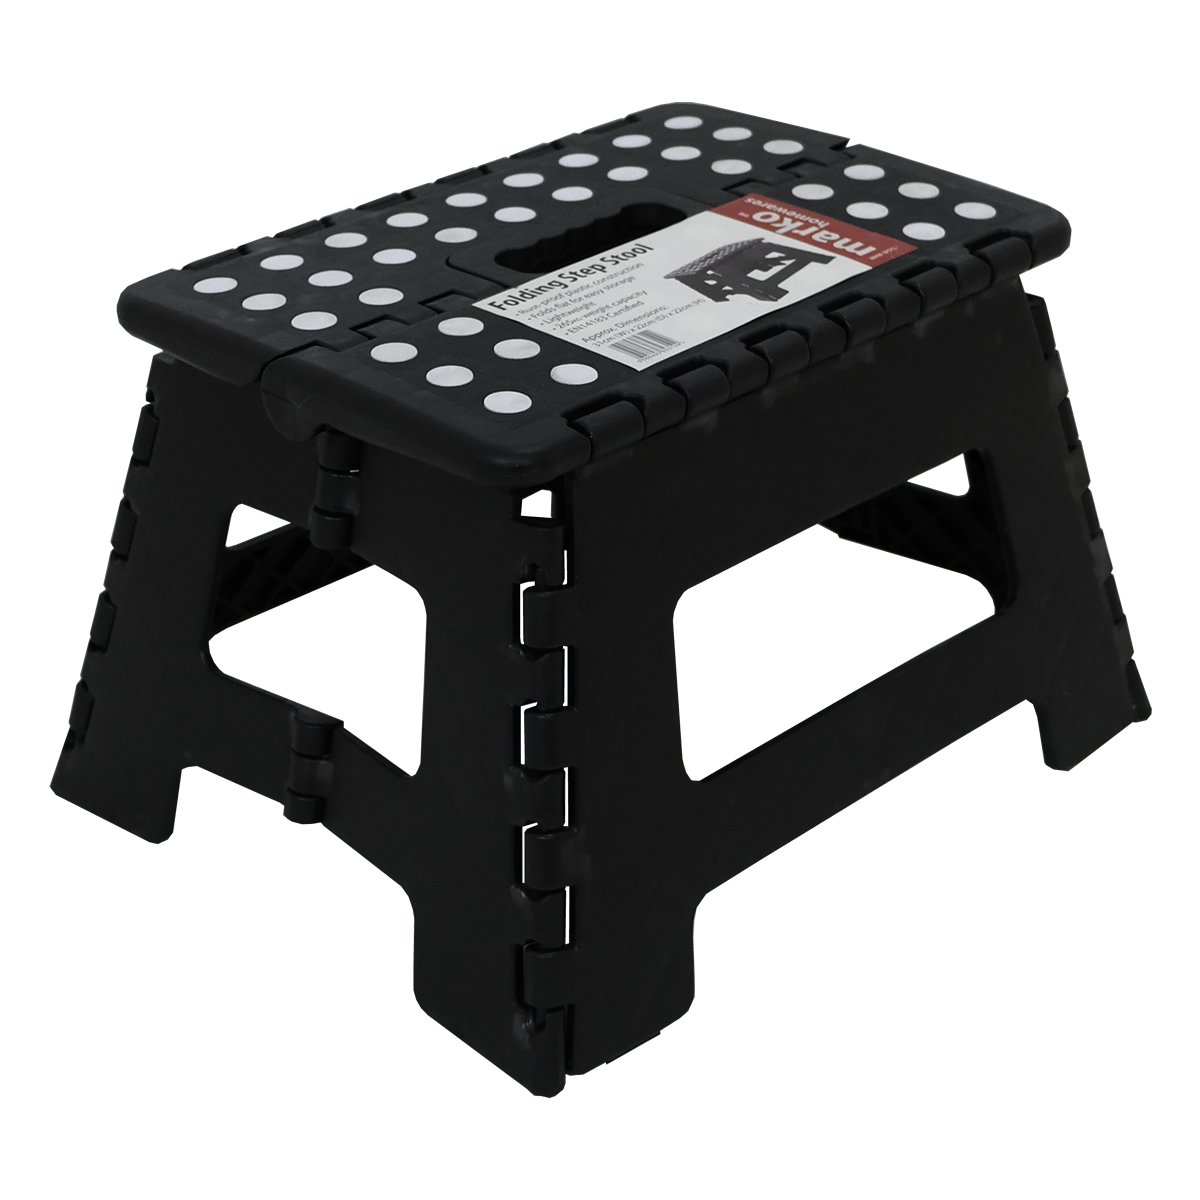 150KG Single Step Plastic Folding Step Up Stools Collapsible Foldaway Large Heavy Duty  sc 1 st  Amazon UK : folding step up stool - islam-shia.org